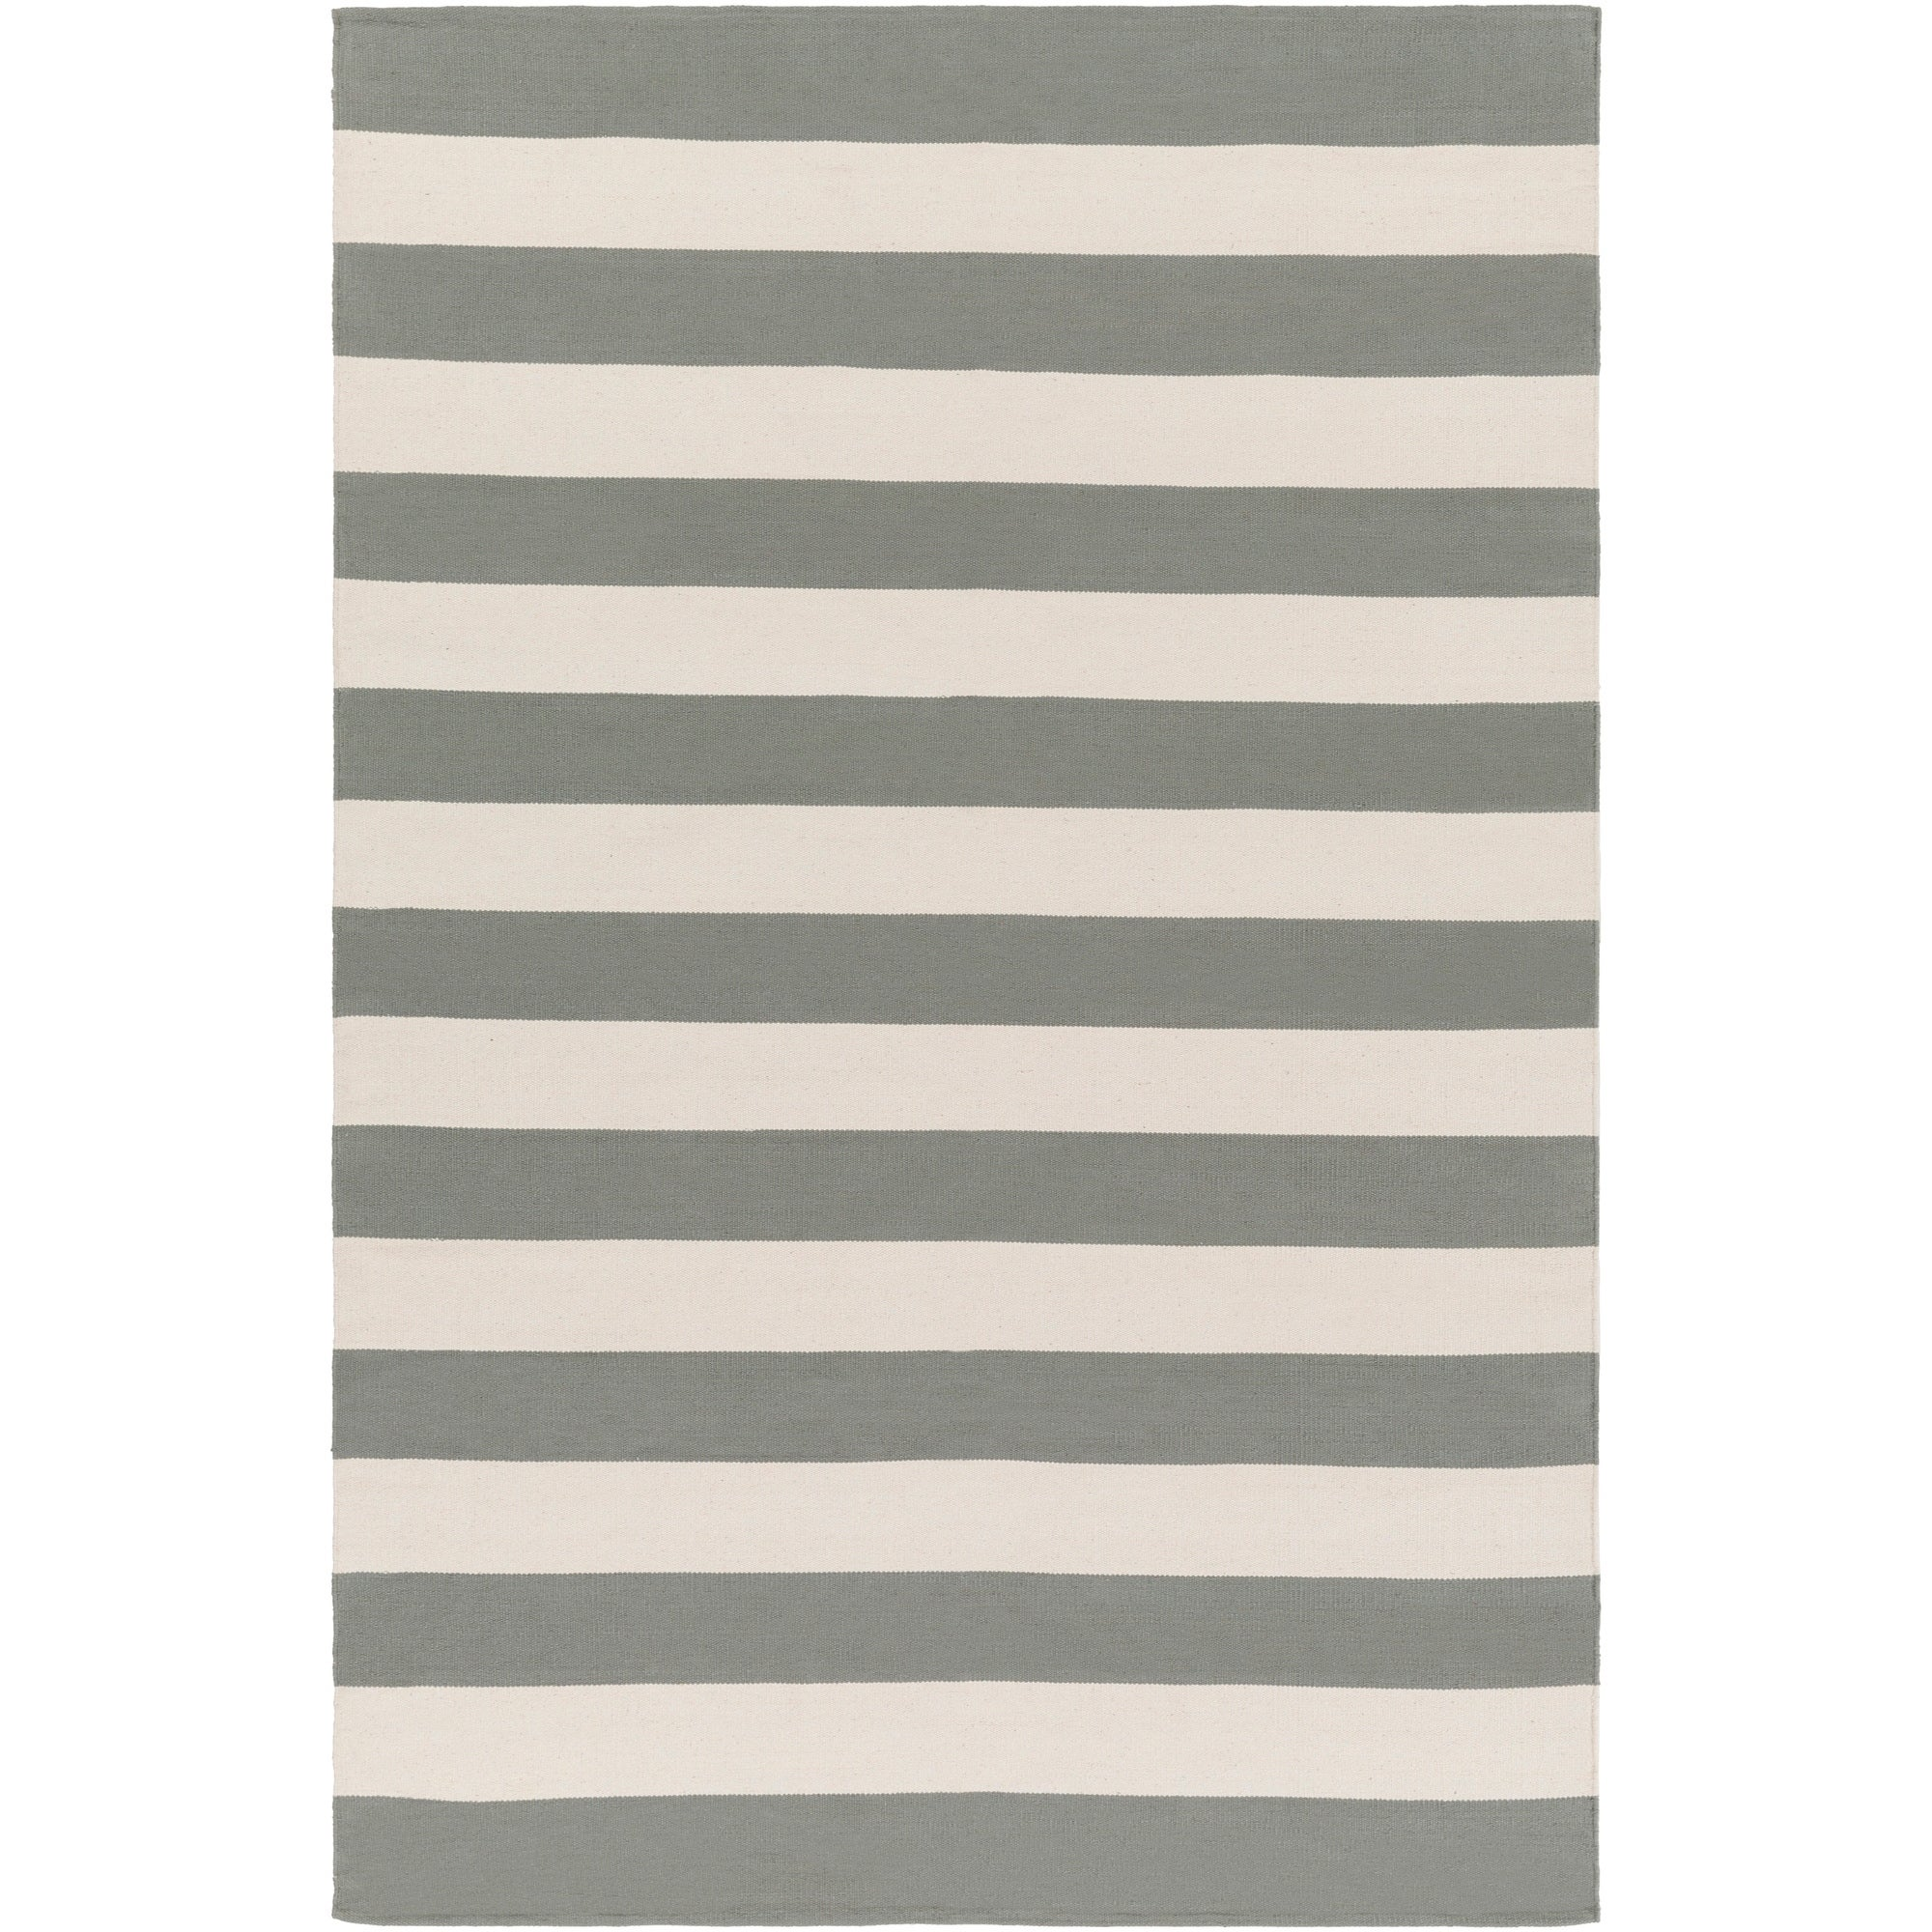 Hand Woven Lasvegas Cotton Rug Free Shipping On Orders Over 45 Com 10628711